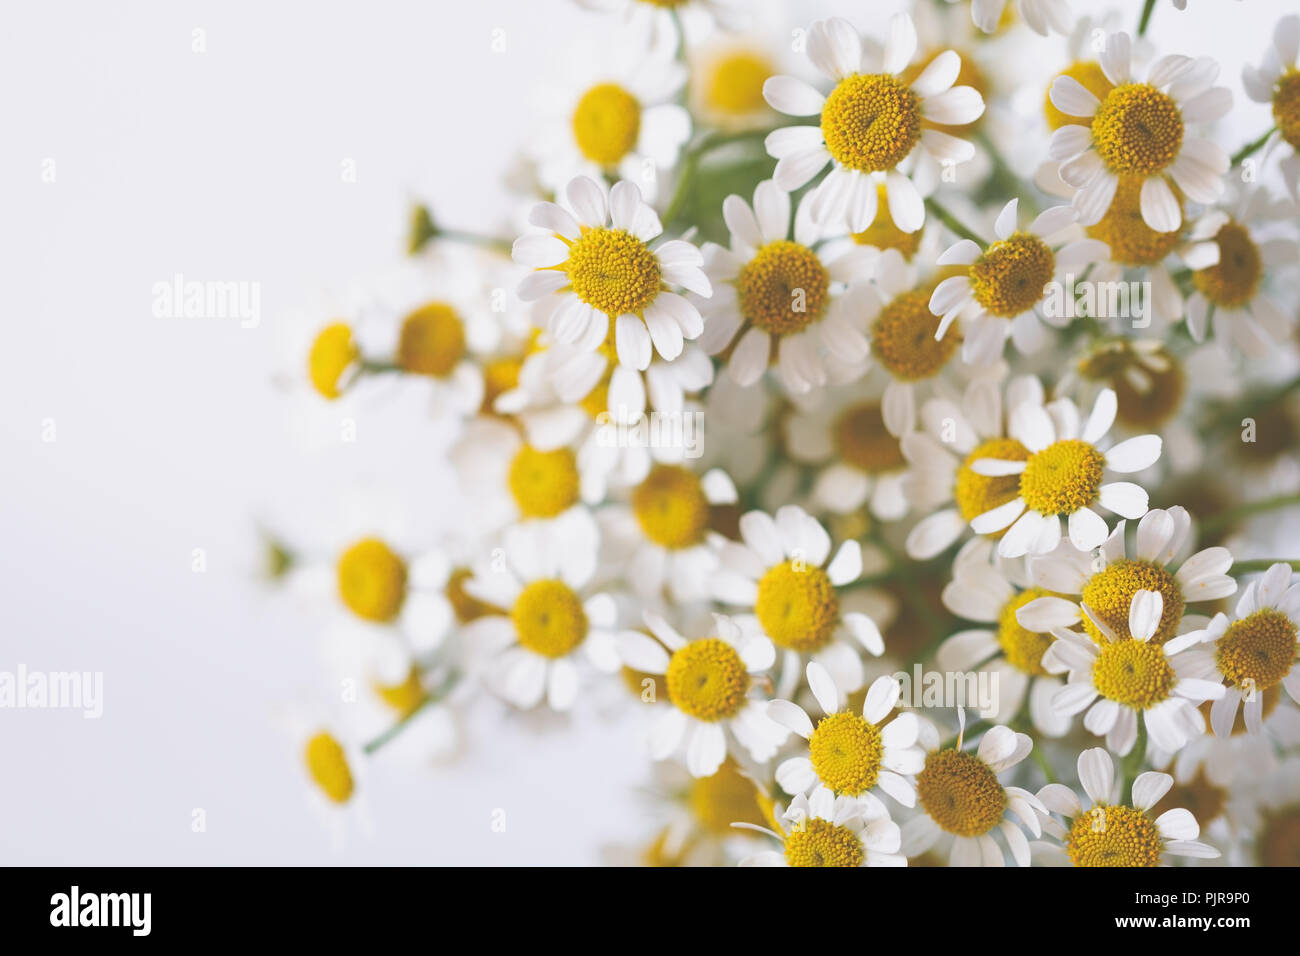 Little daisy flowers bouquet over white soft focus top view close little daisy flowers bouquet over white soft focus top view close up composition copy space izmirmasajfo